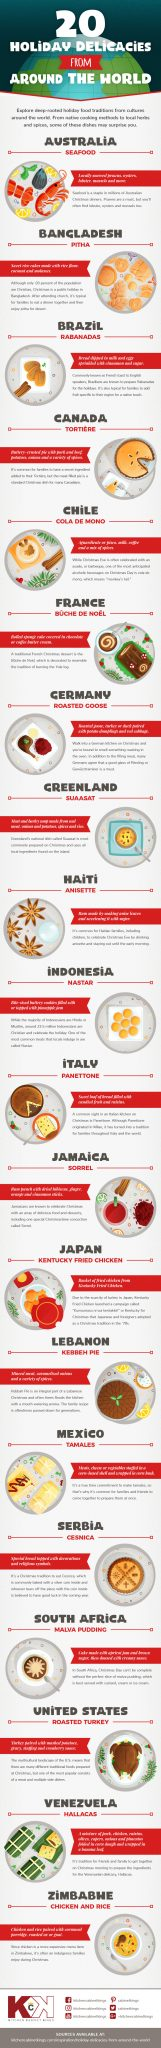 Christmas food traditions and delicacies from around the world